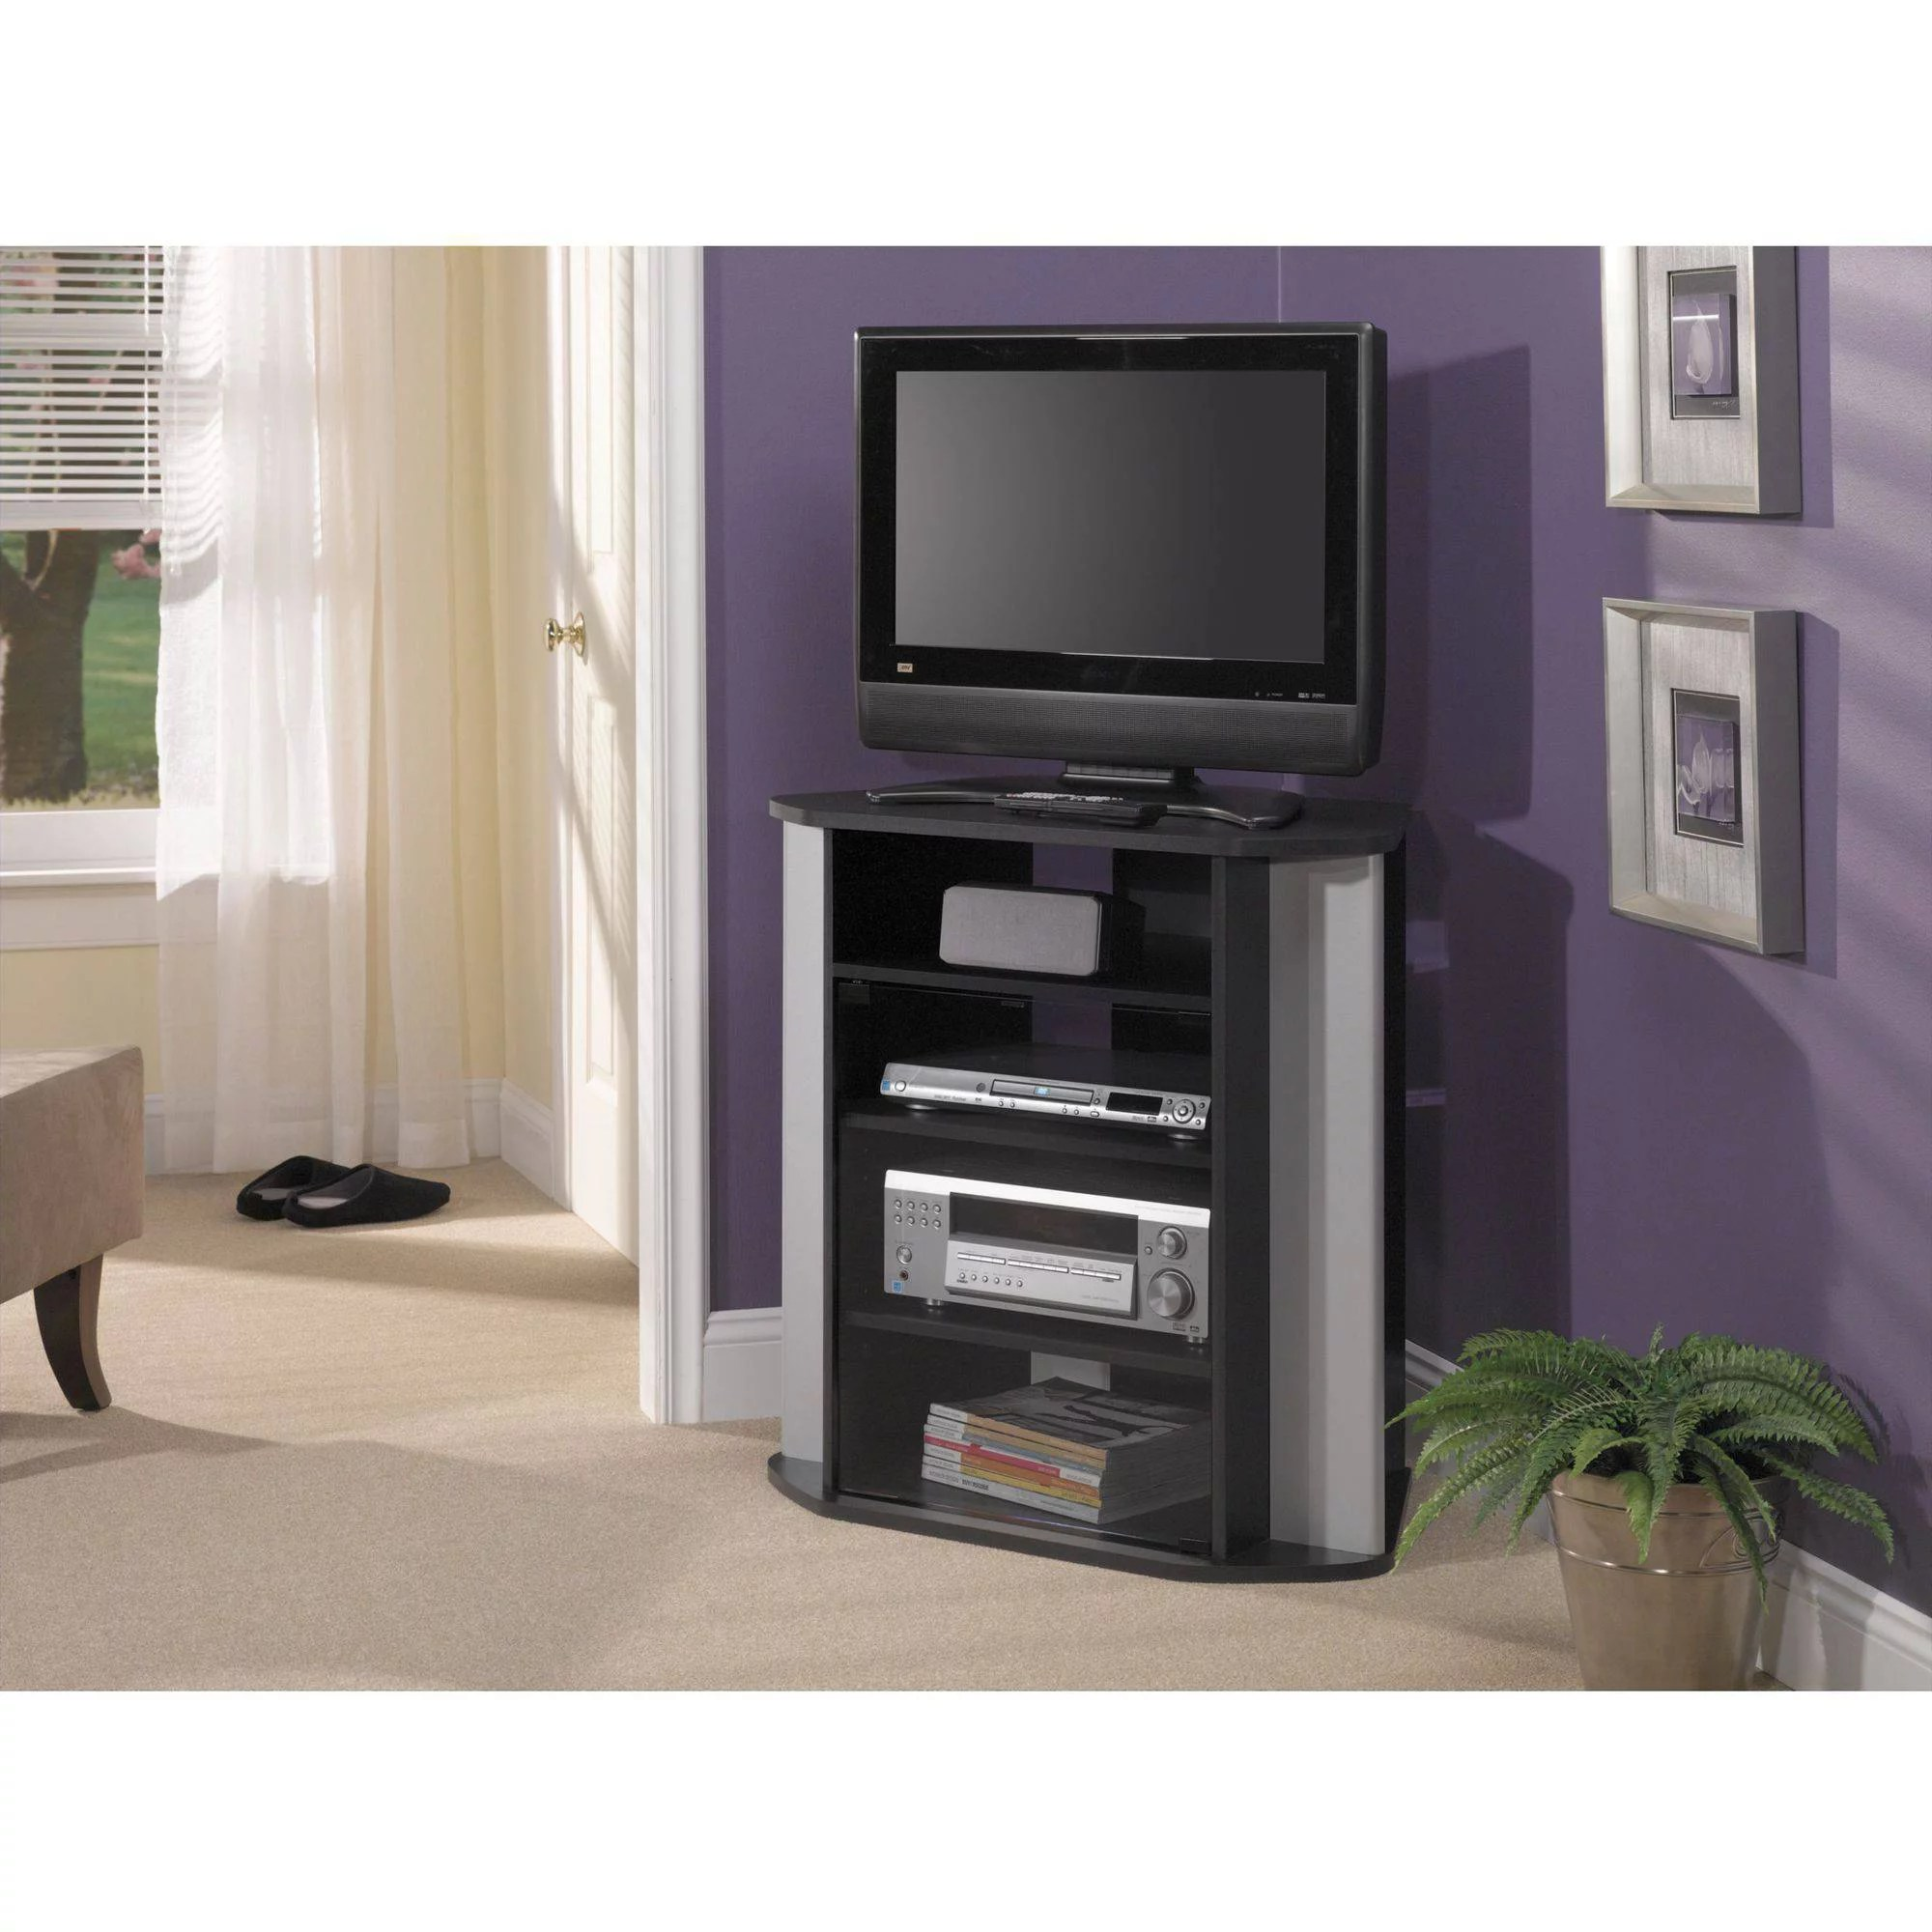 bush visions black tall corner tv stand, for tvs up to 37